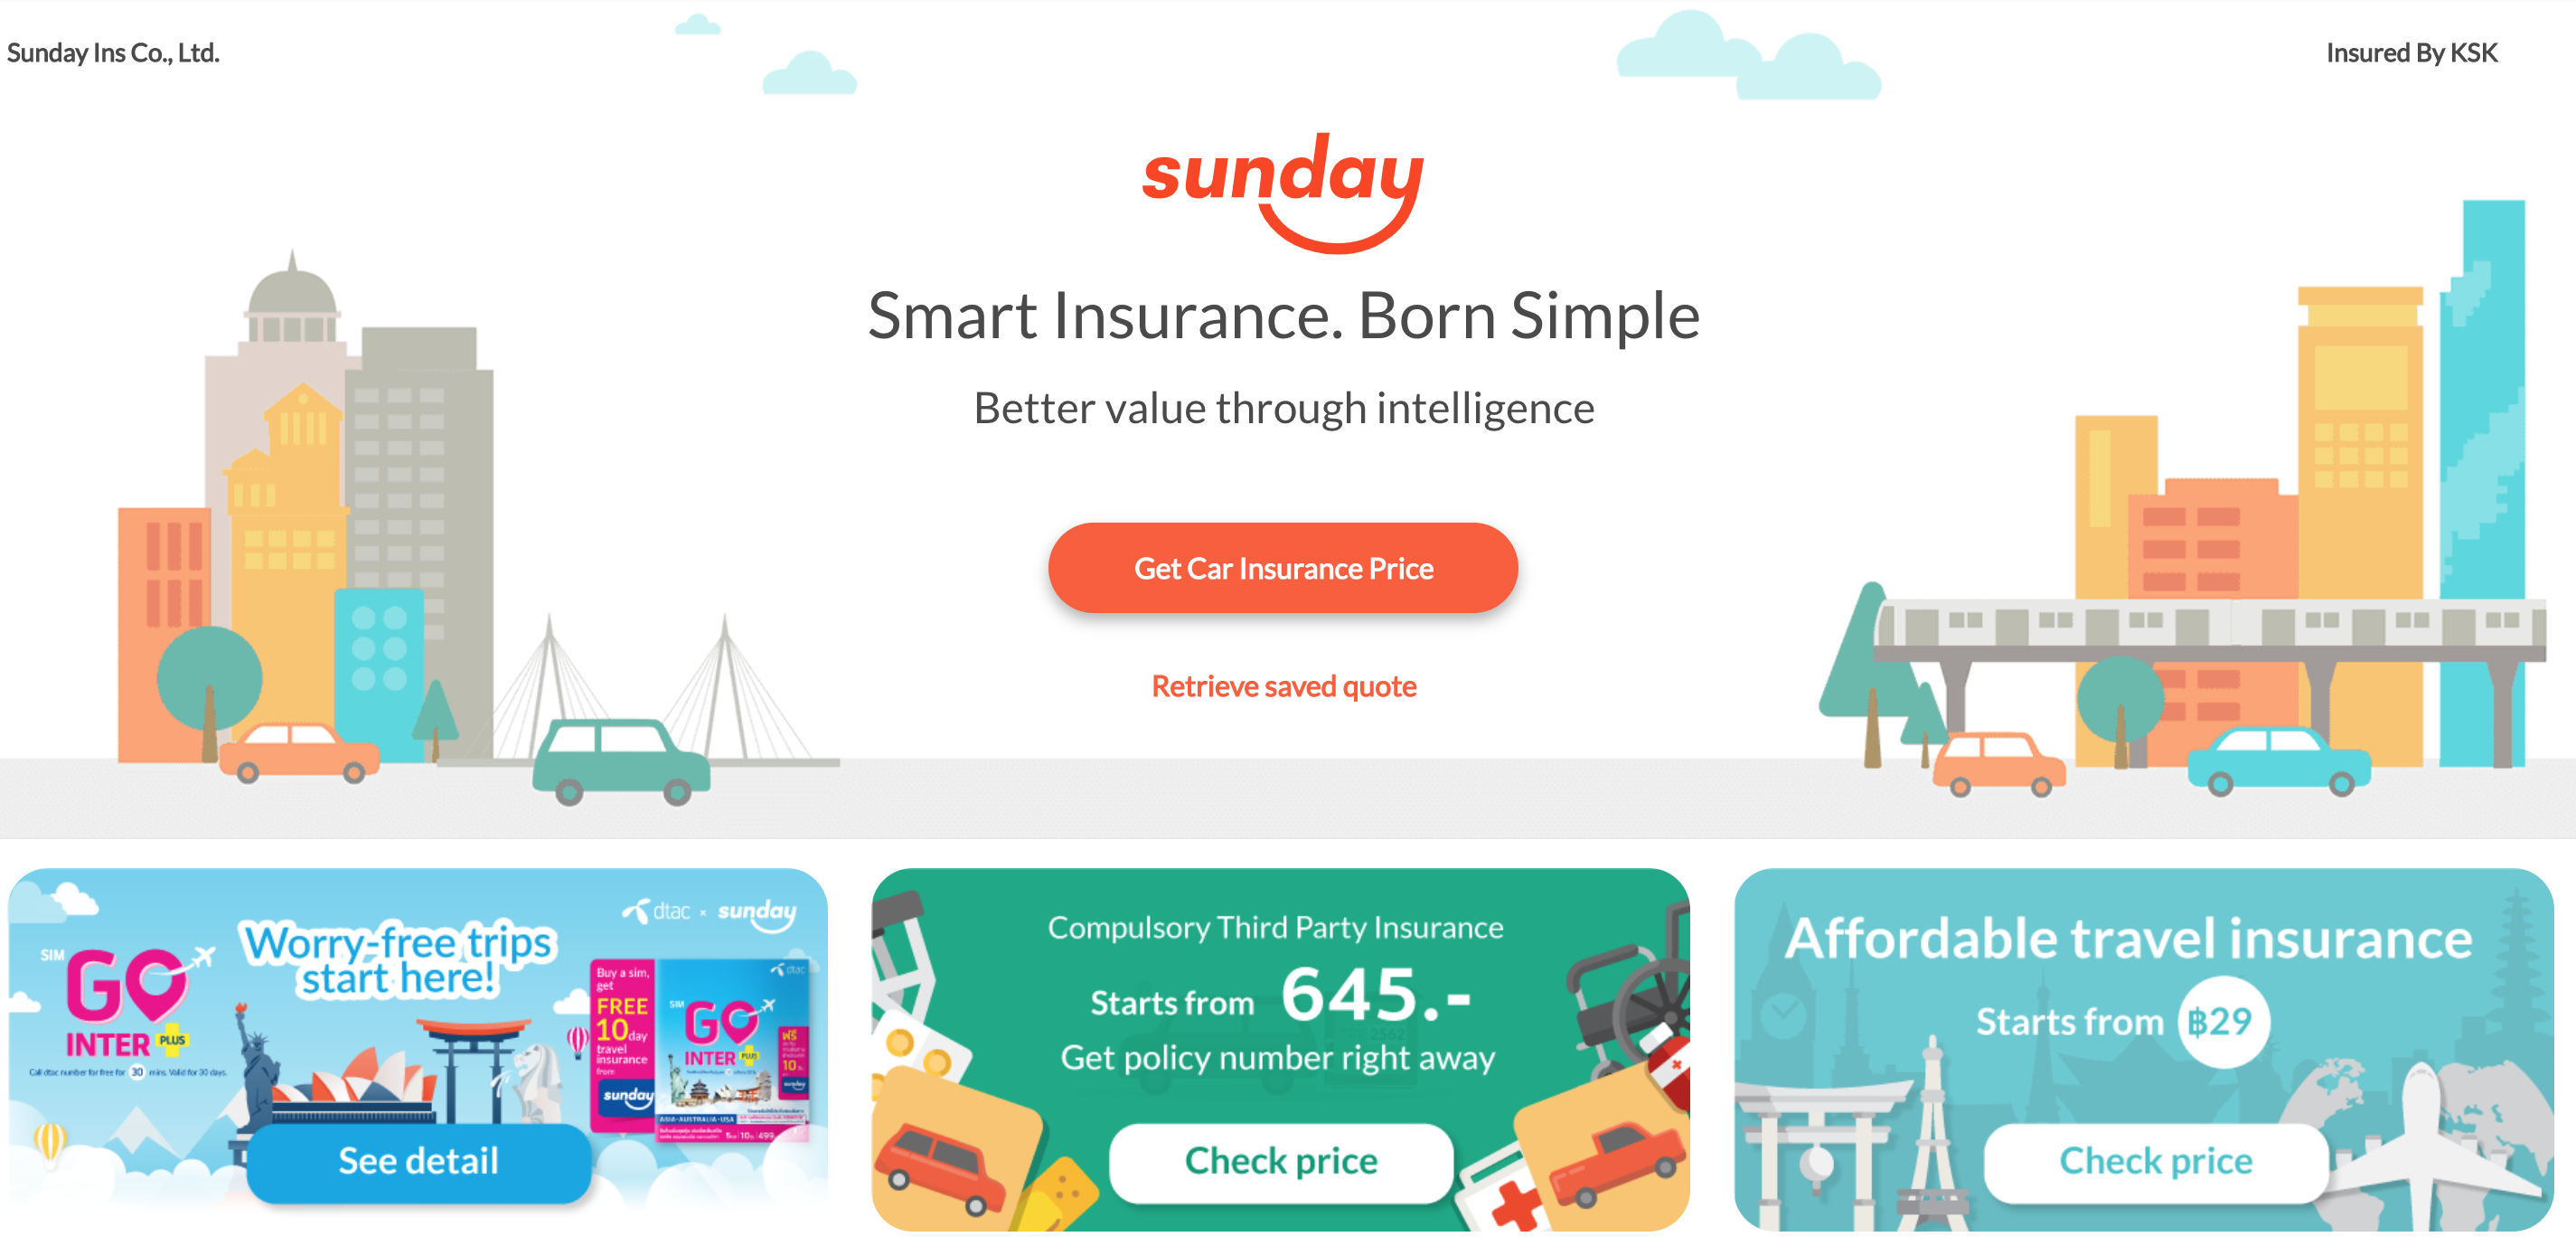 Case Study: Sunday Delivers Lower-Cost Premiums Using AWS